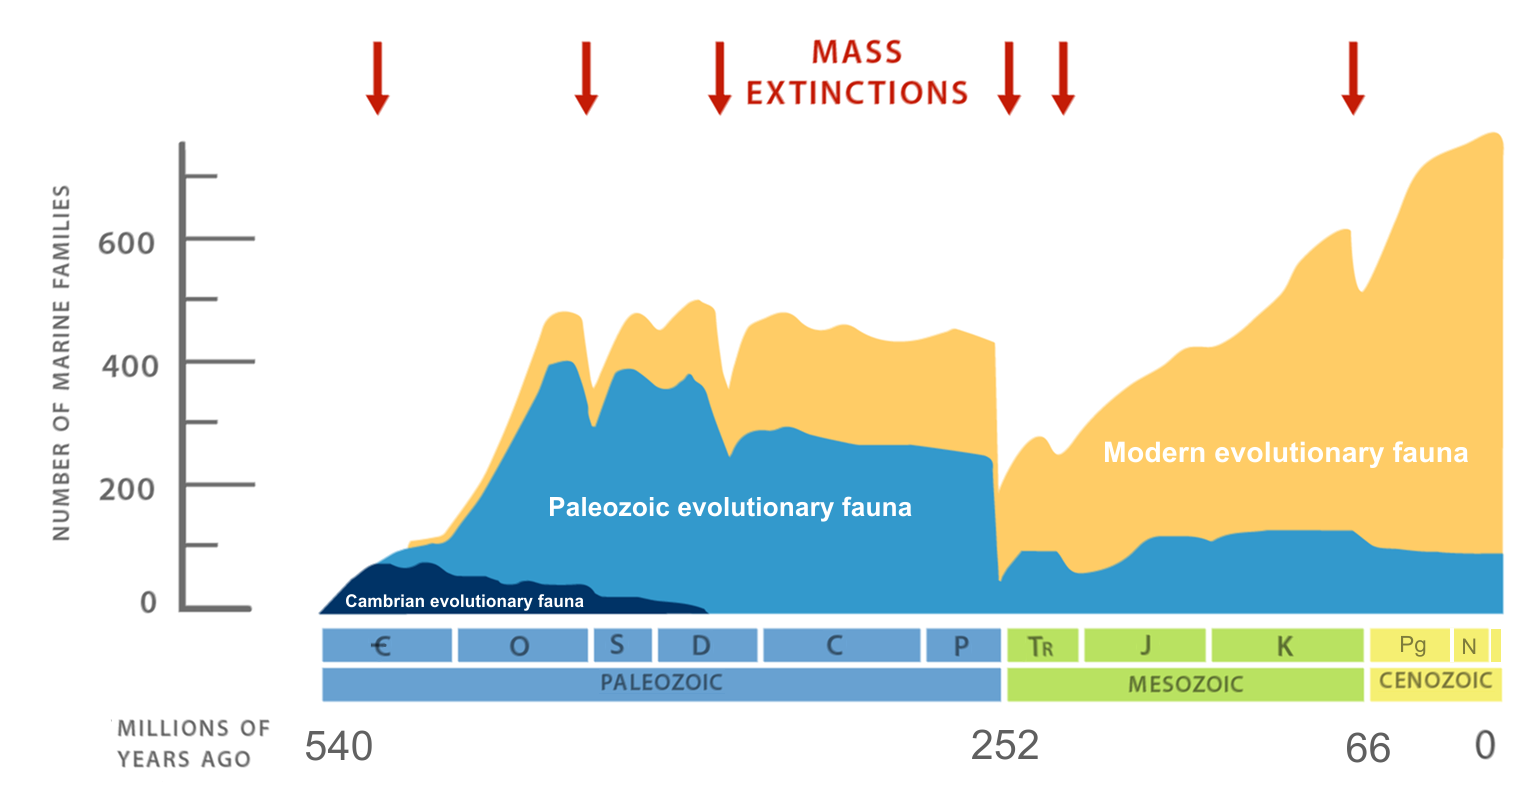 Sepkoski curve showing diversity of marine animal familes through time and 5 major mass exticntion events.